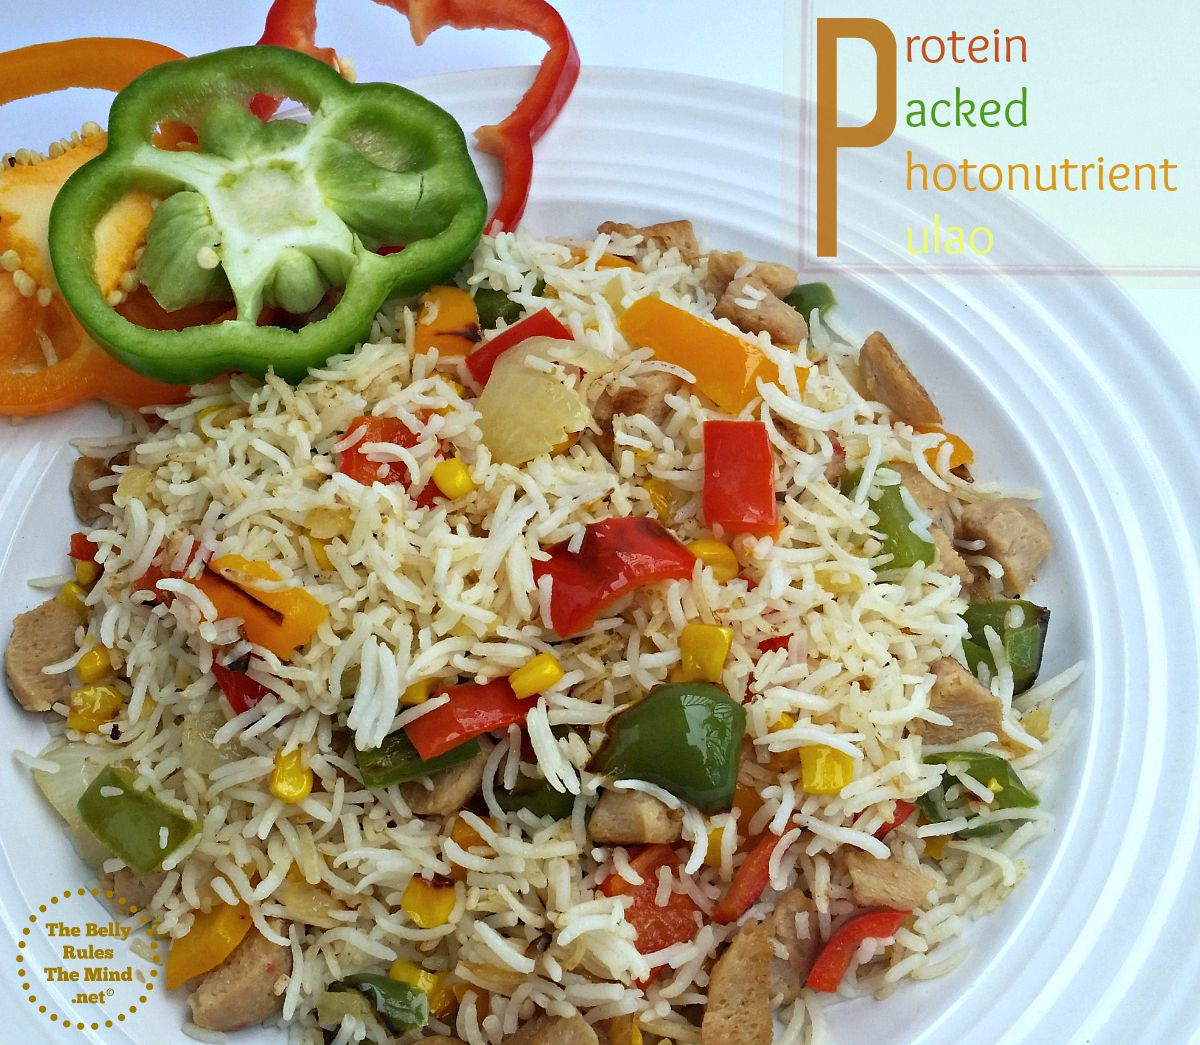 Protein Packed Photonutrient pulav